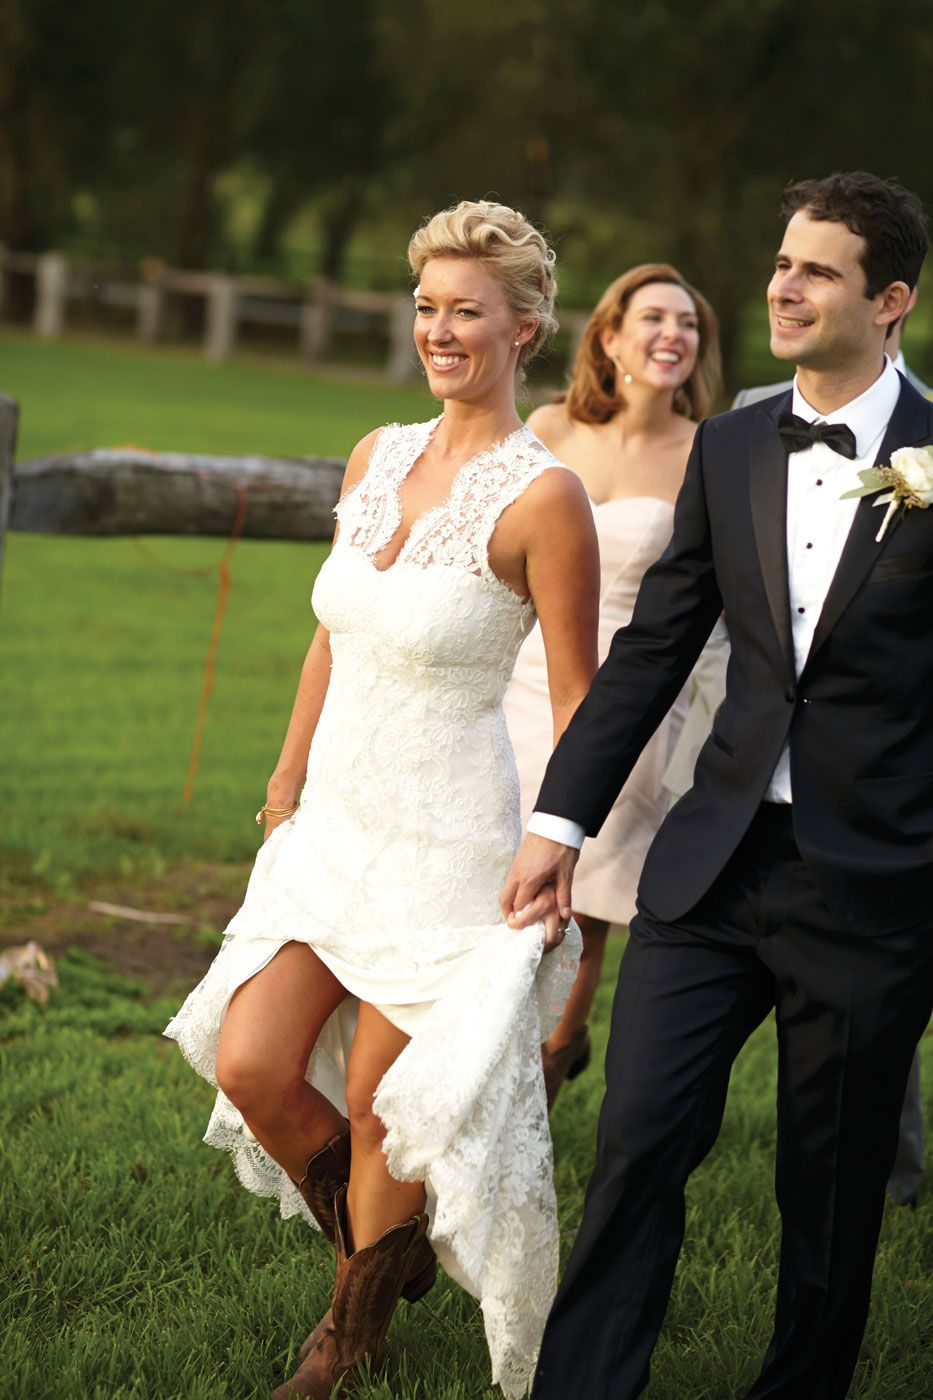 This Wedding Saw The Bride And Bridesmaids Wear Cowboy Boots For A